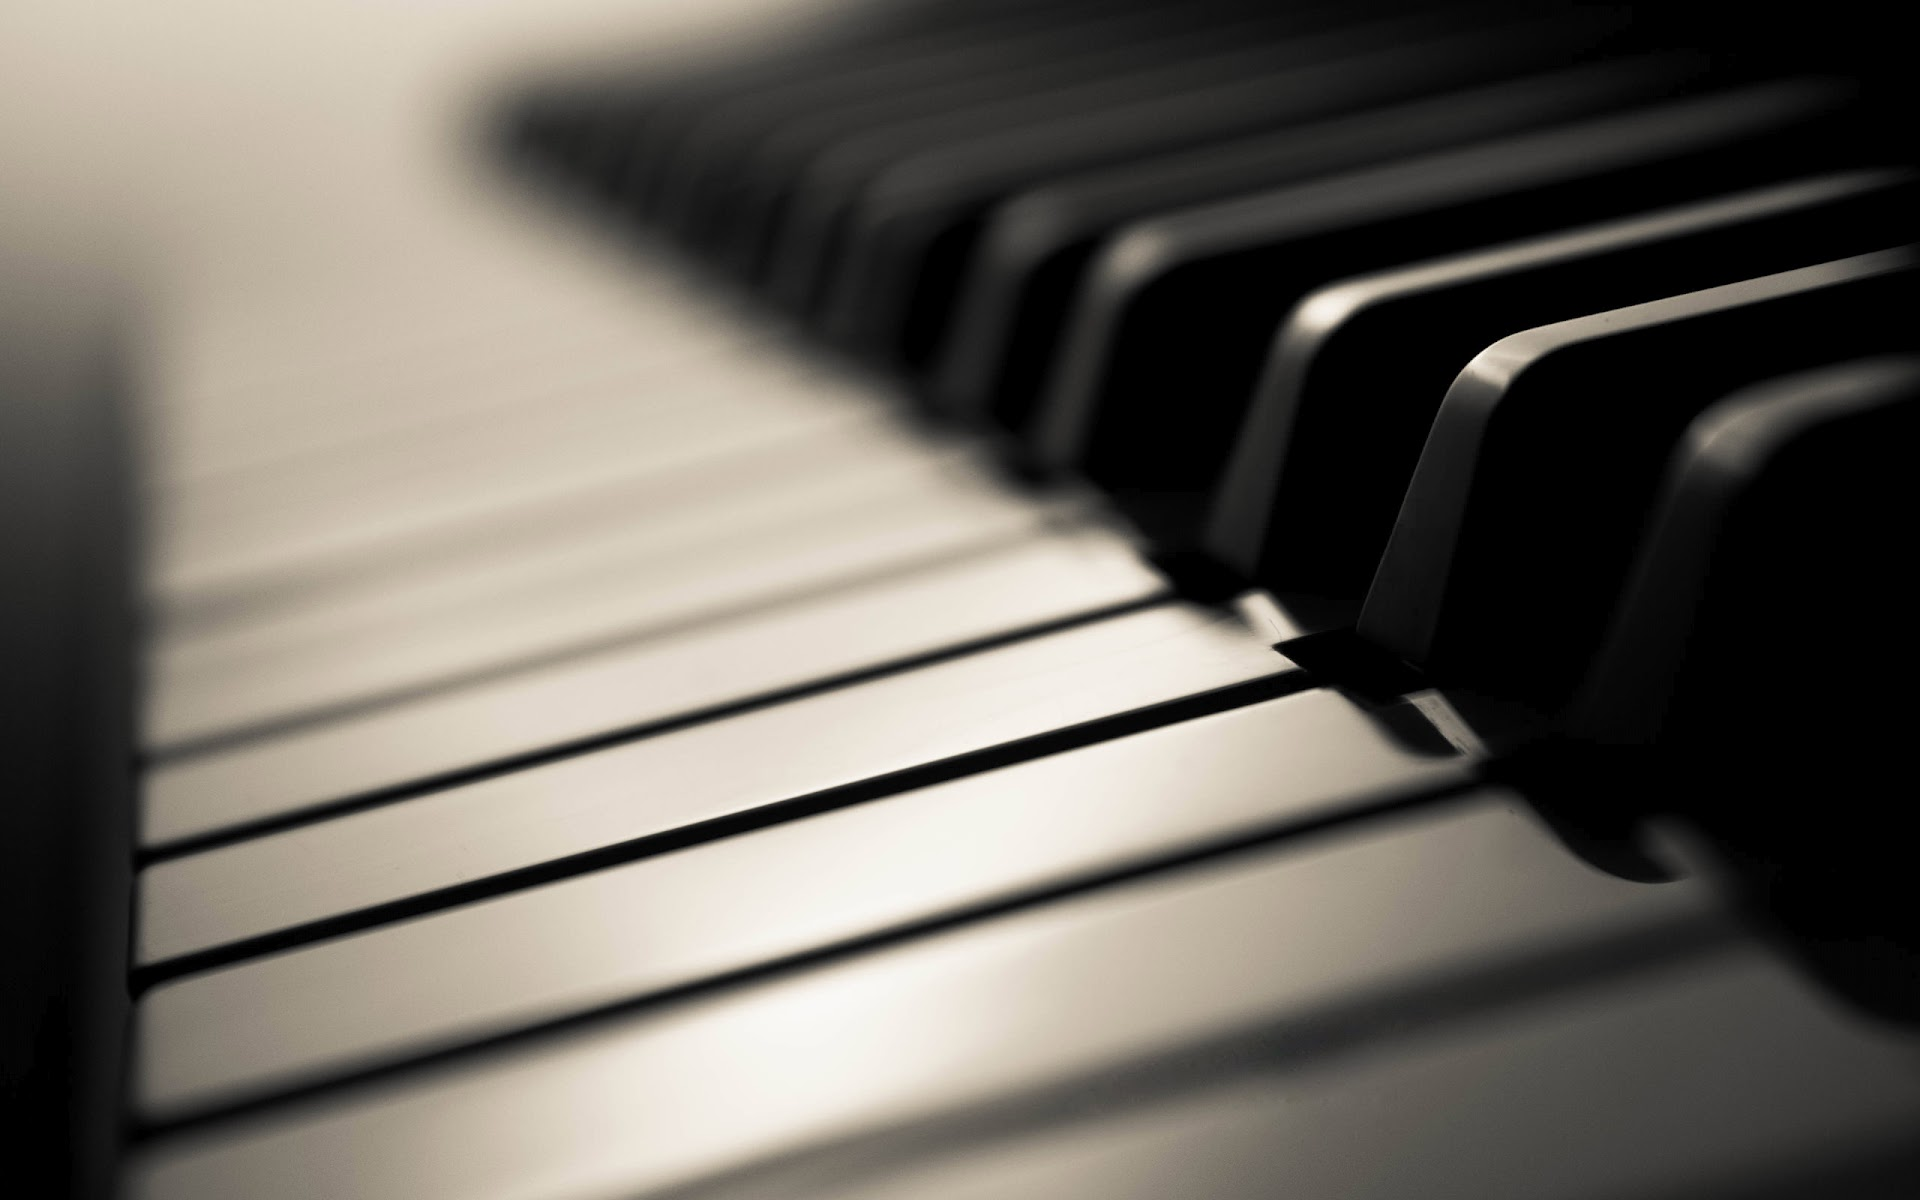 piano-keys-wallpaper